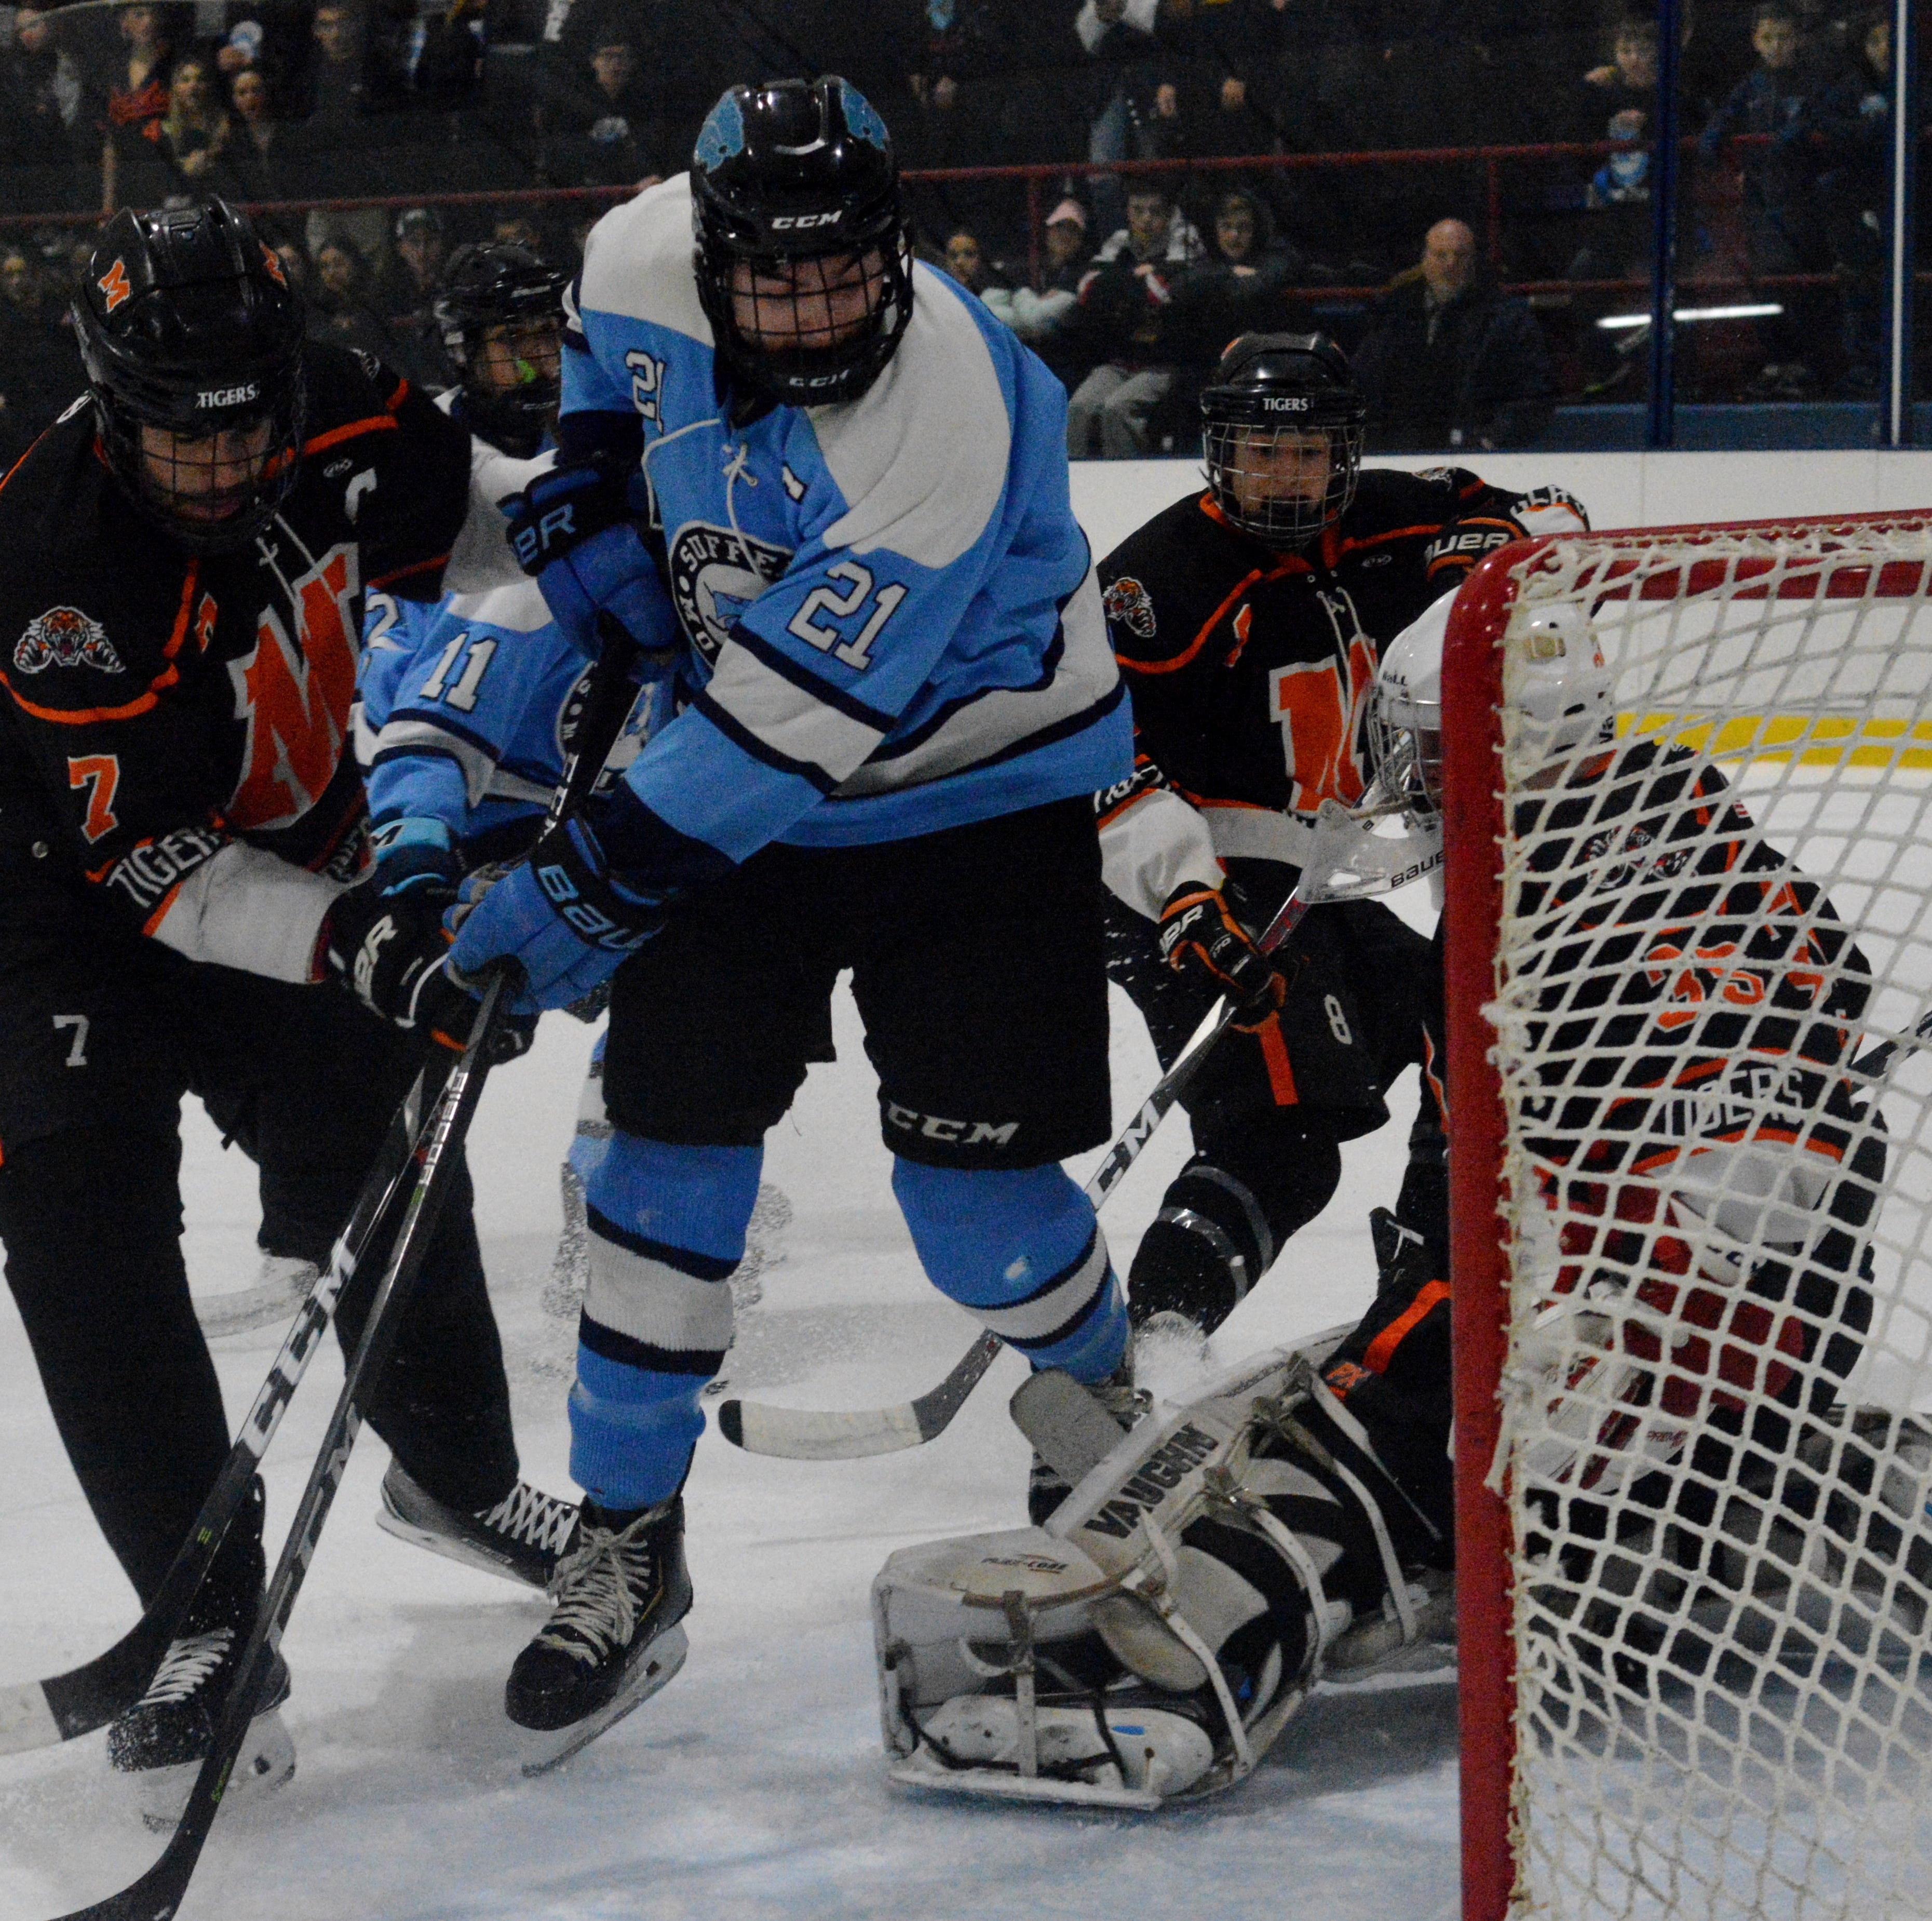 Hockey: Suffern isn't entirely pleased with a win over Mamaroneck